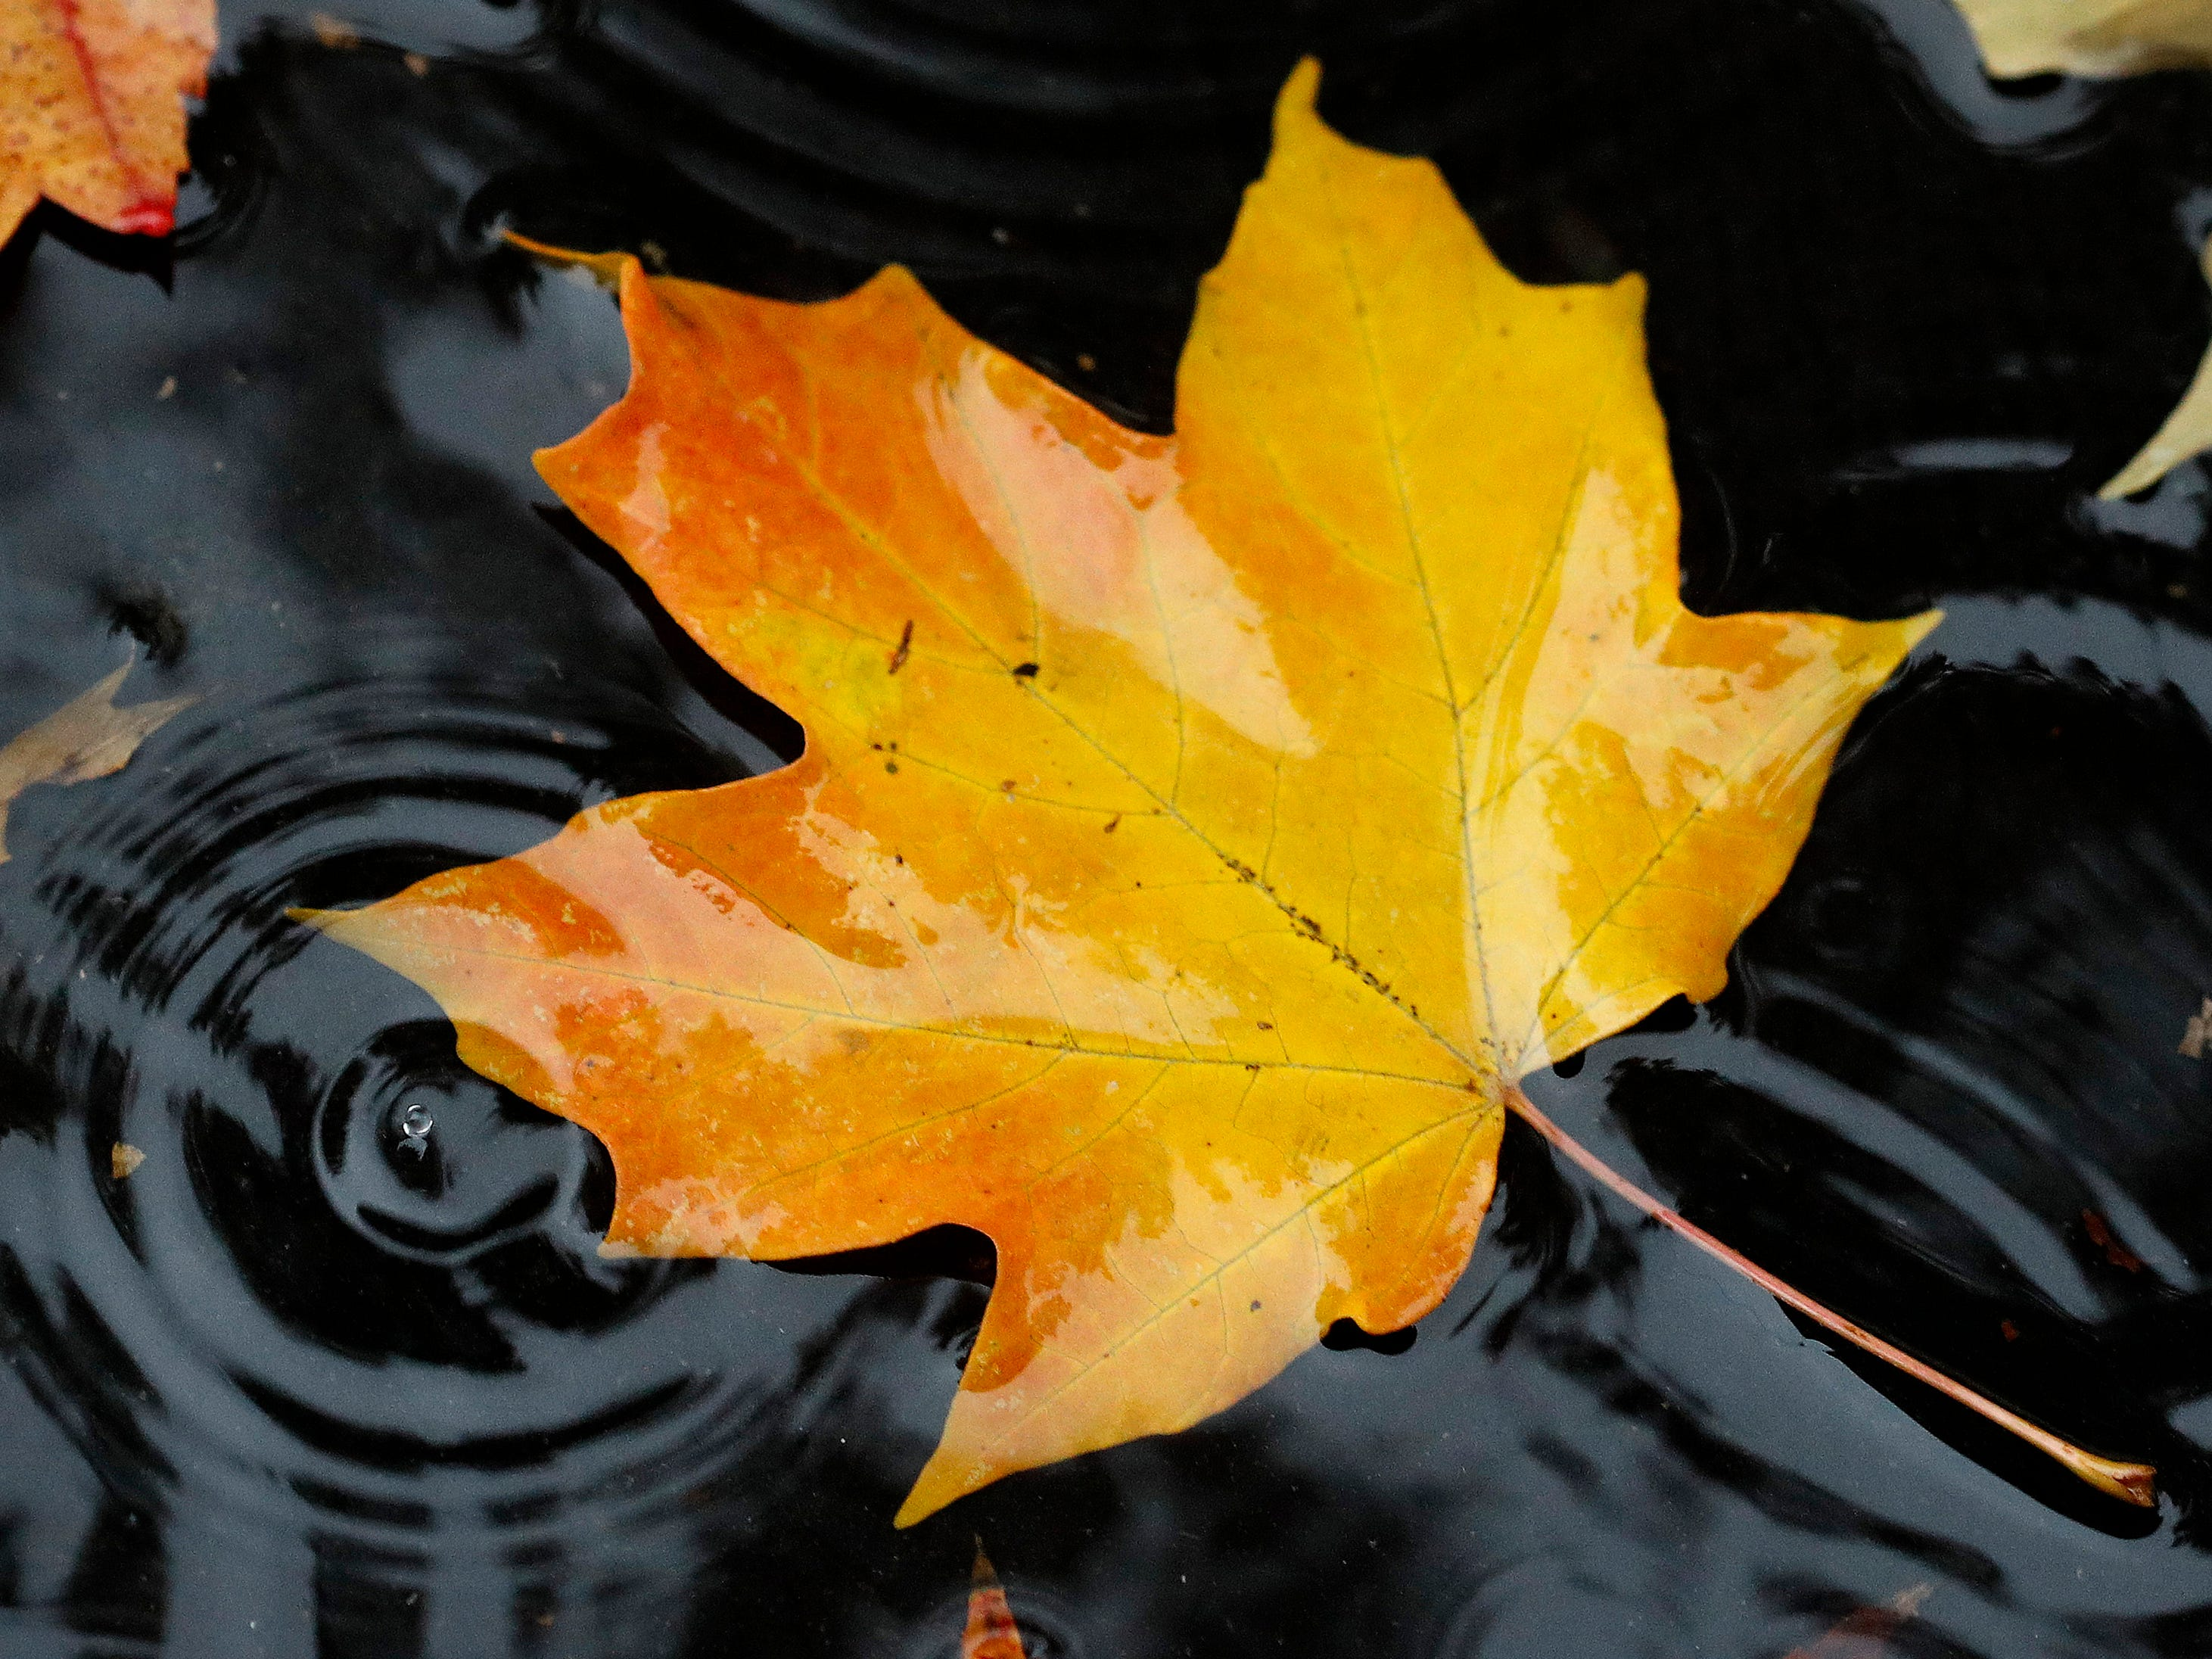 A rain drop falls next to a fallen leaf as it floats in a puddle in Overland Park, Kan., Monday, Nov. 5, 2018.